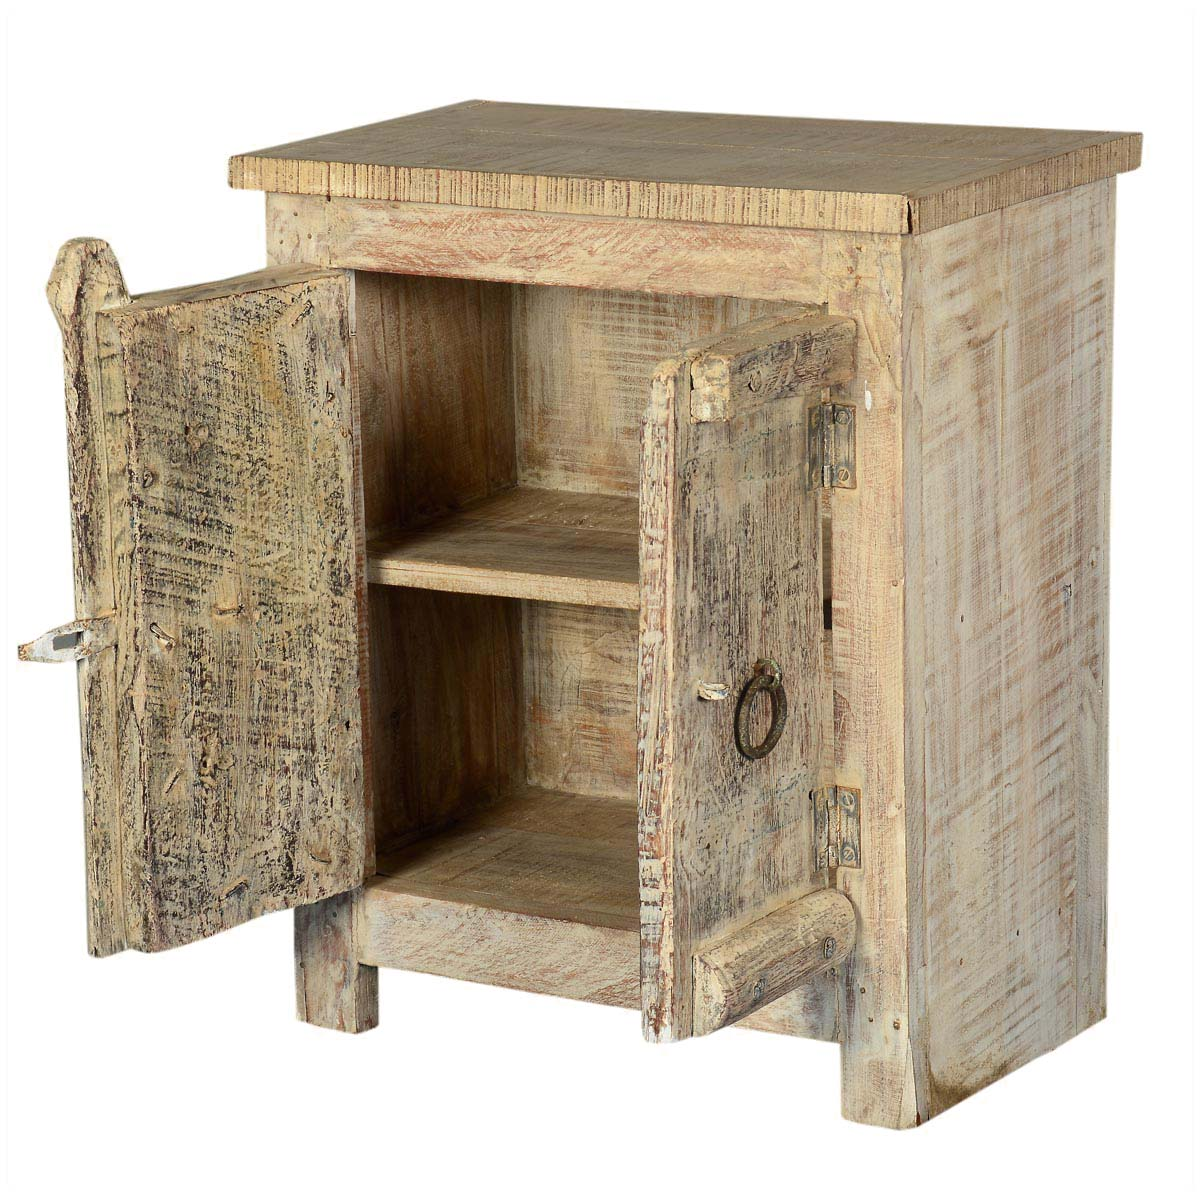 amish door old wood small rustic accent end table hallway with shelves pier one calgary shabby chic floor lamp buffet ikea barn decor cloth target threshold windham cabinet